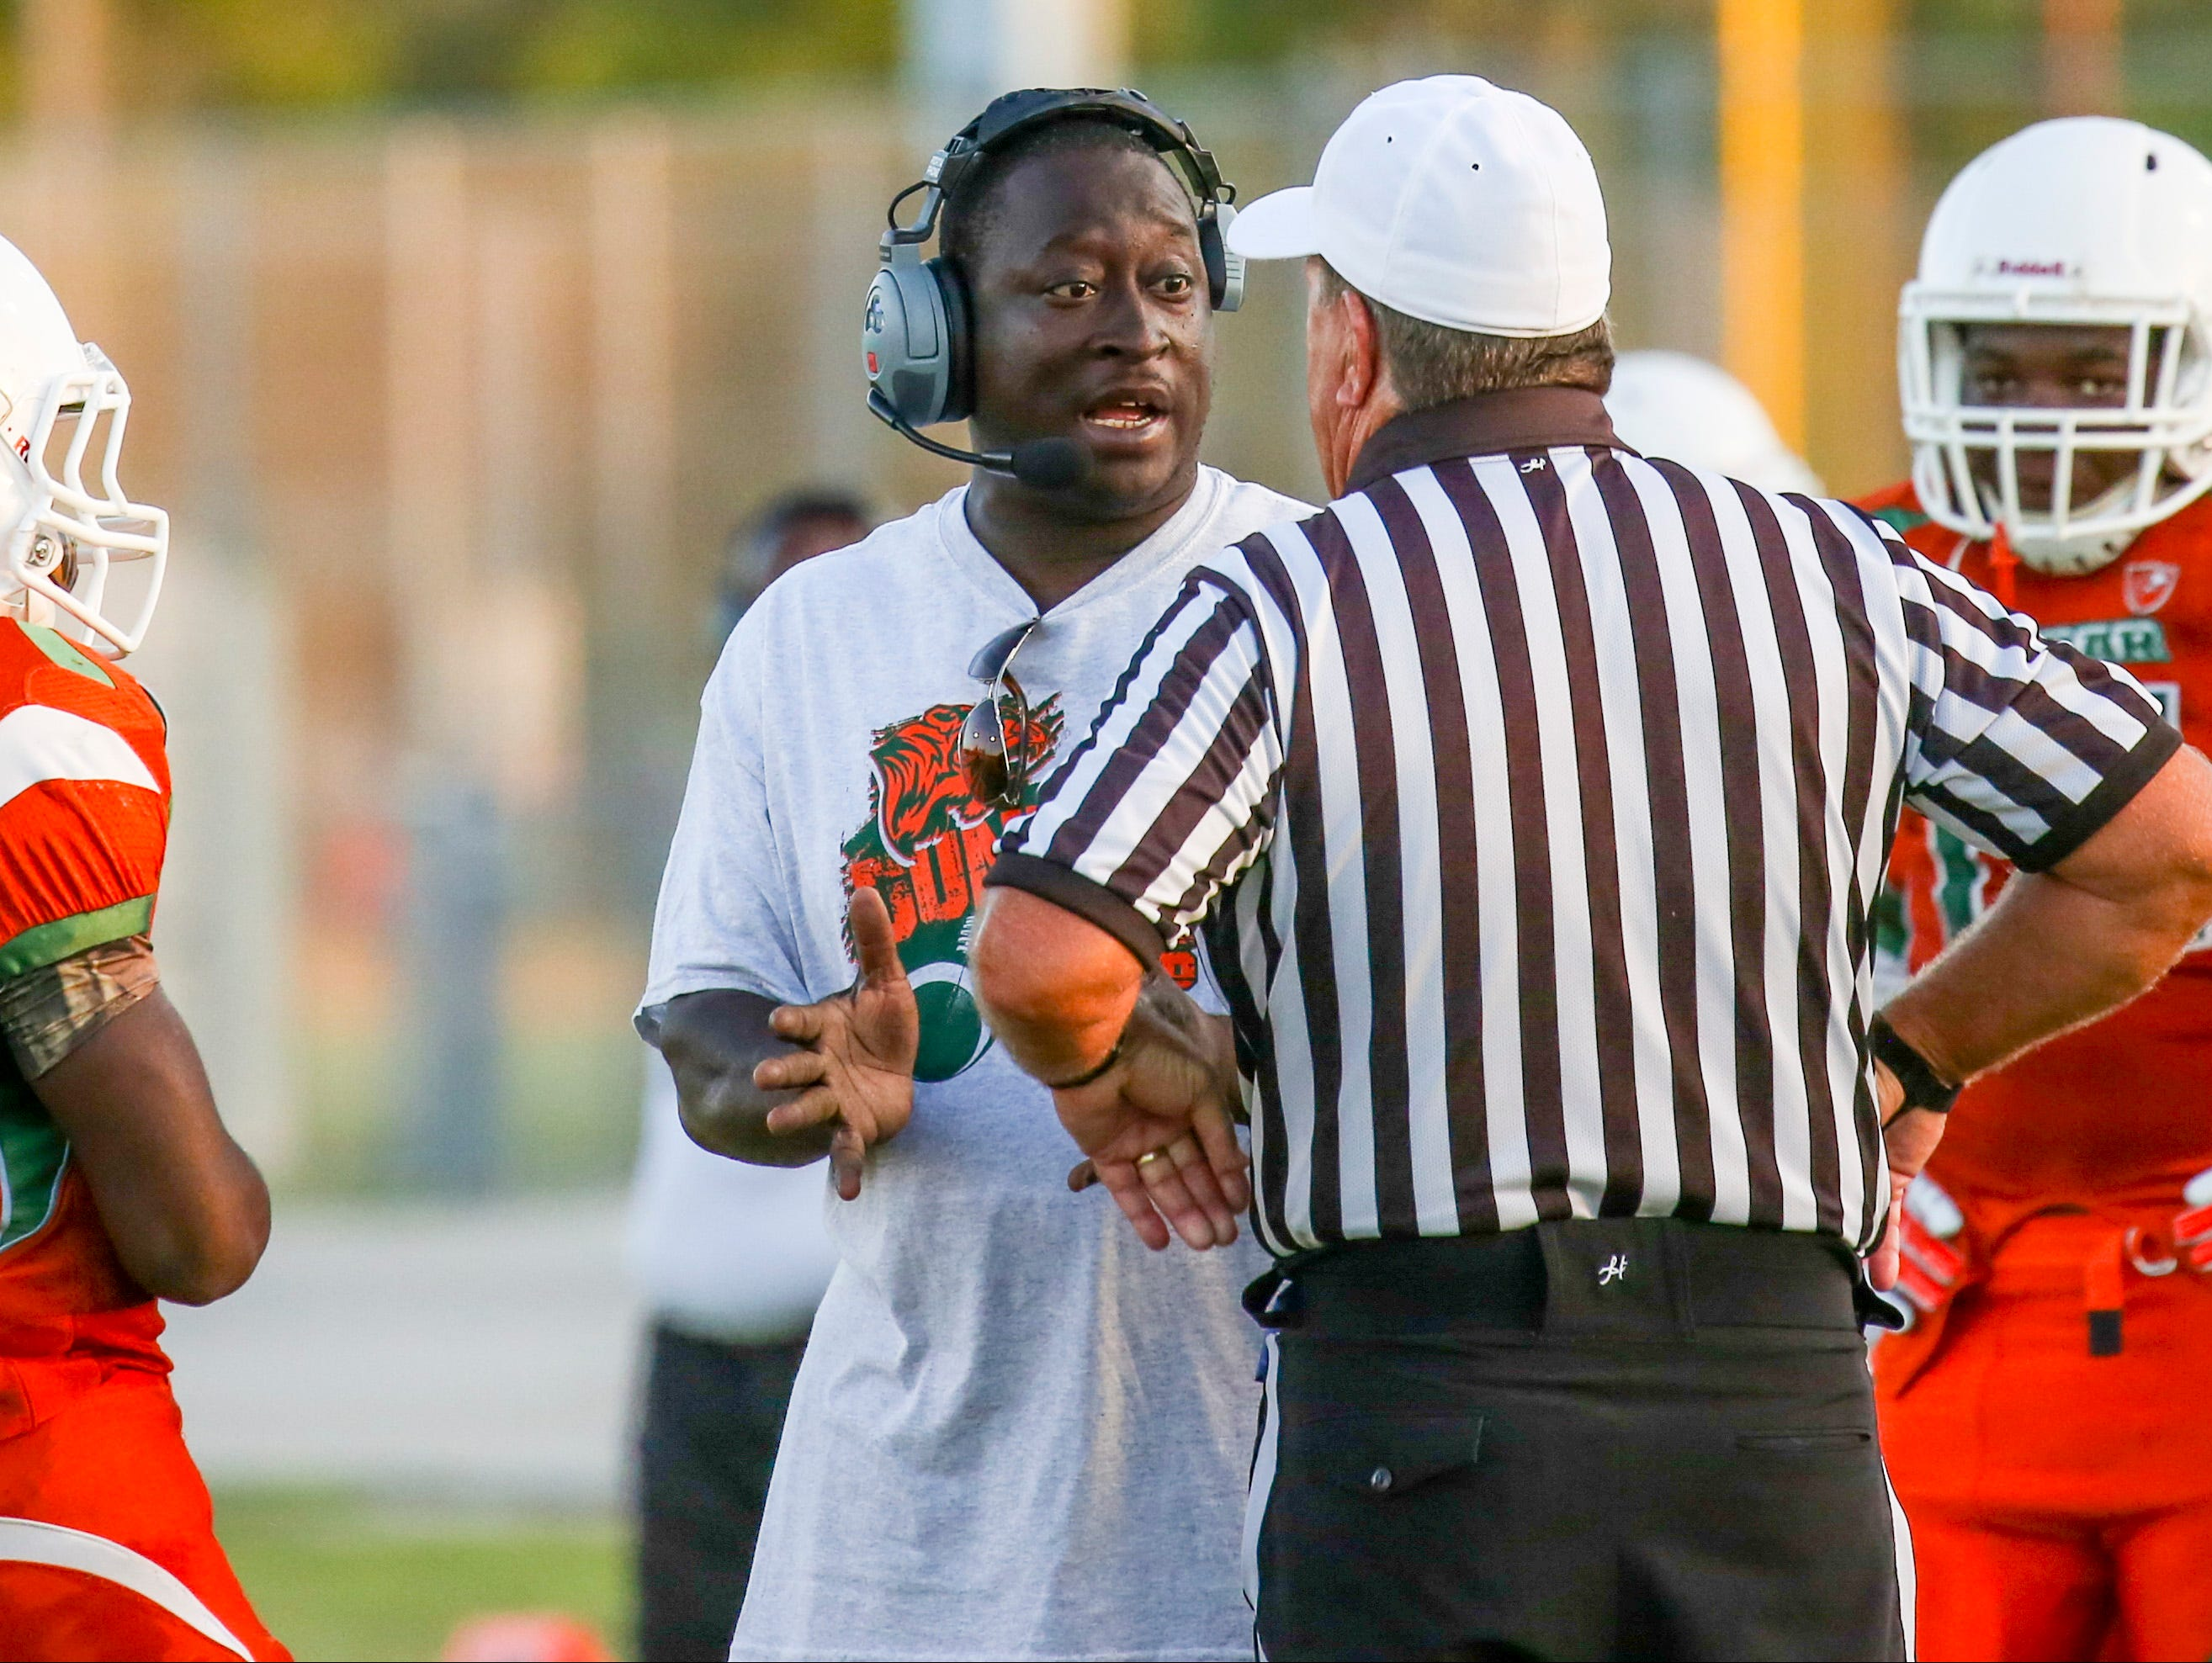 Longtime Dunbar assistant coach Sammy Brown took over as the team's head coach in the spring. The Tigers are coming off a 9-3 2015 that included a run to a regional final.